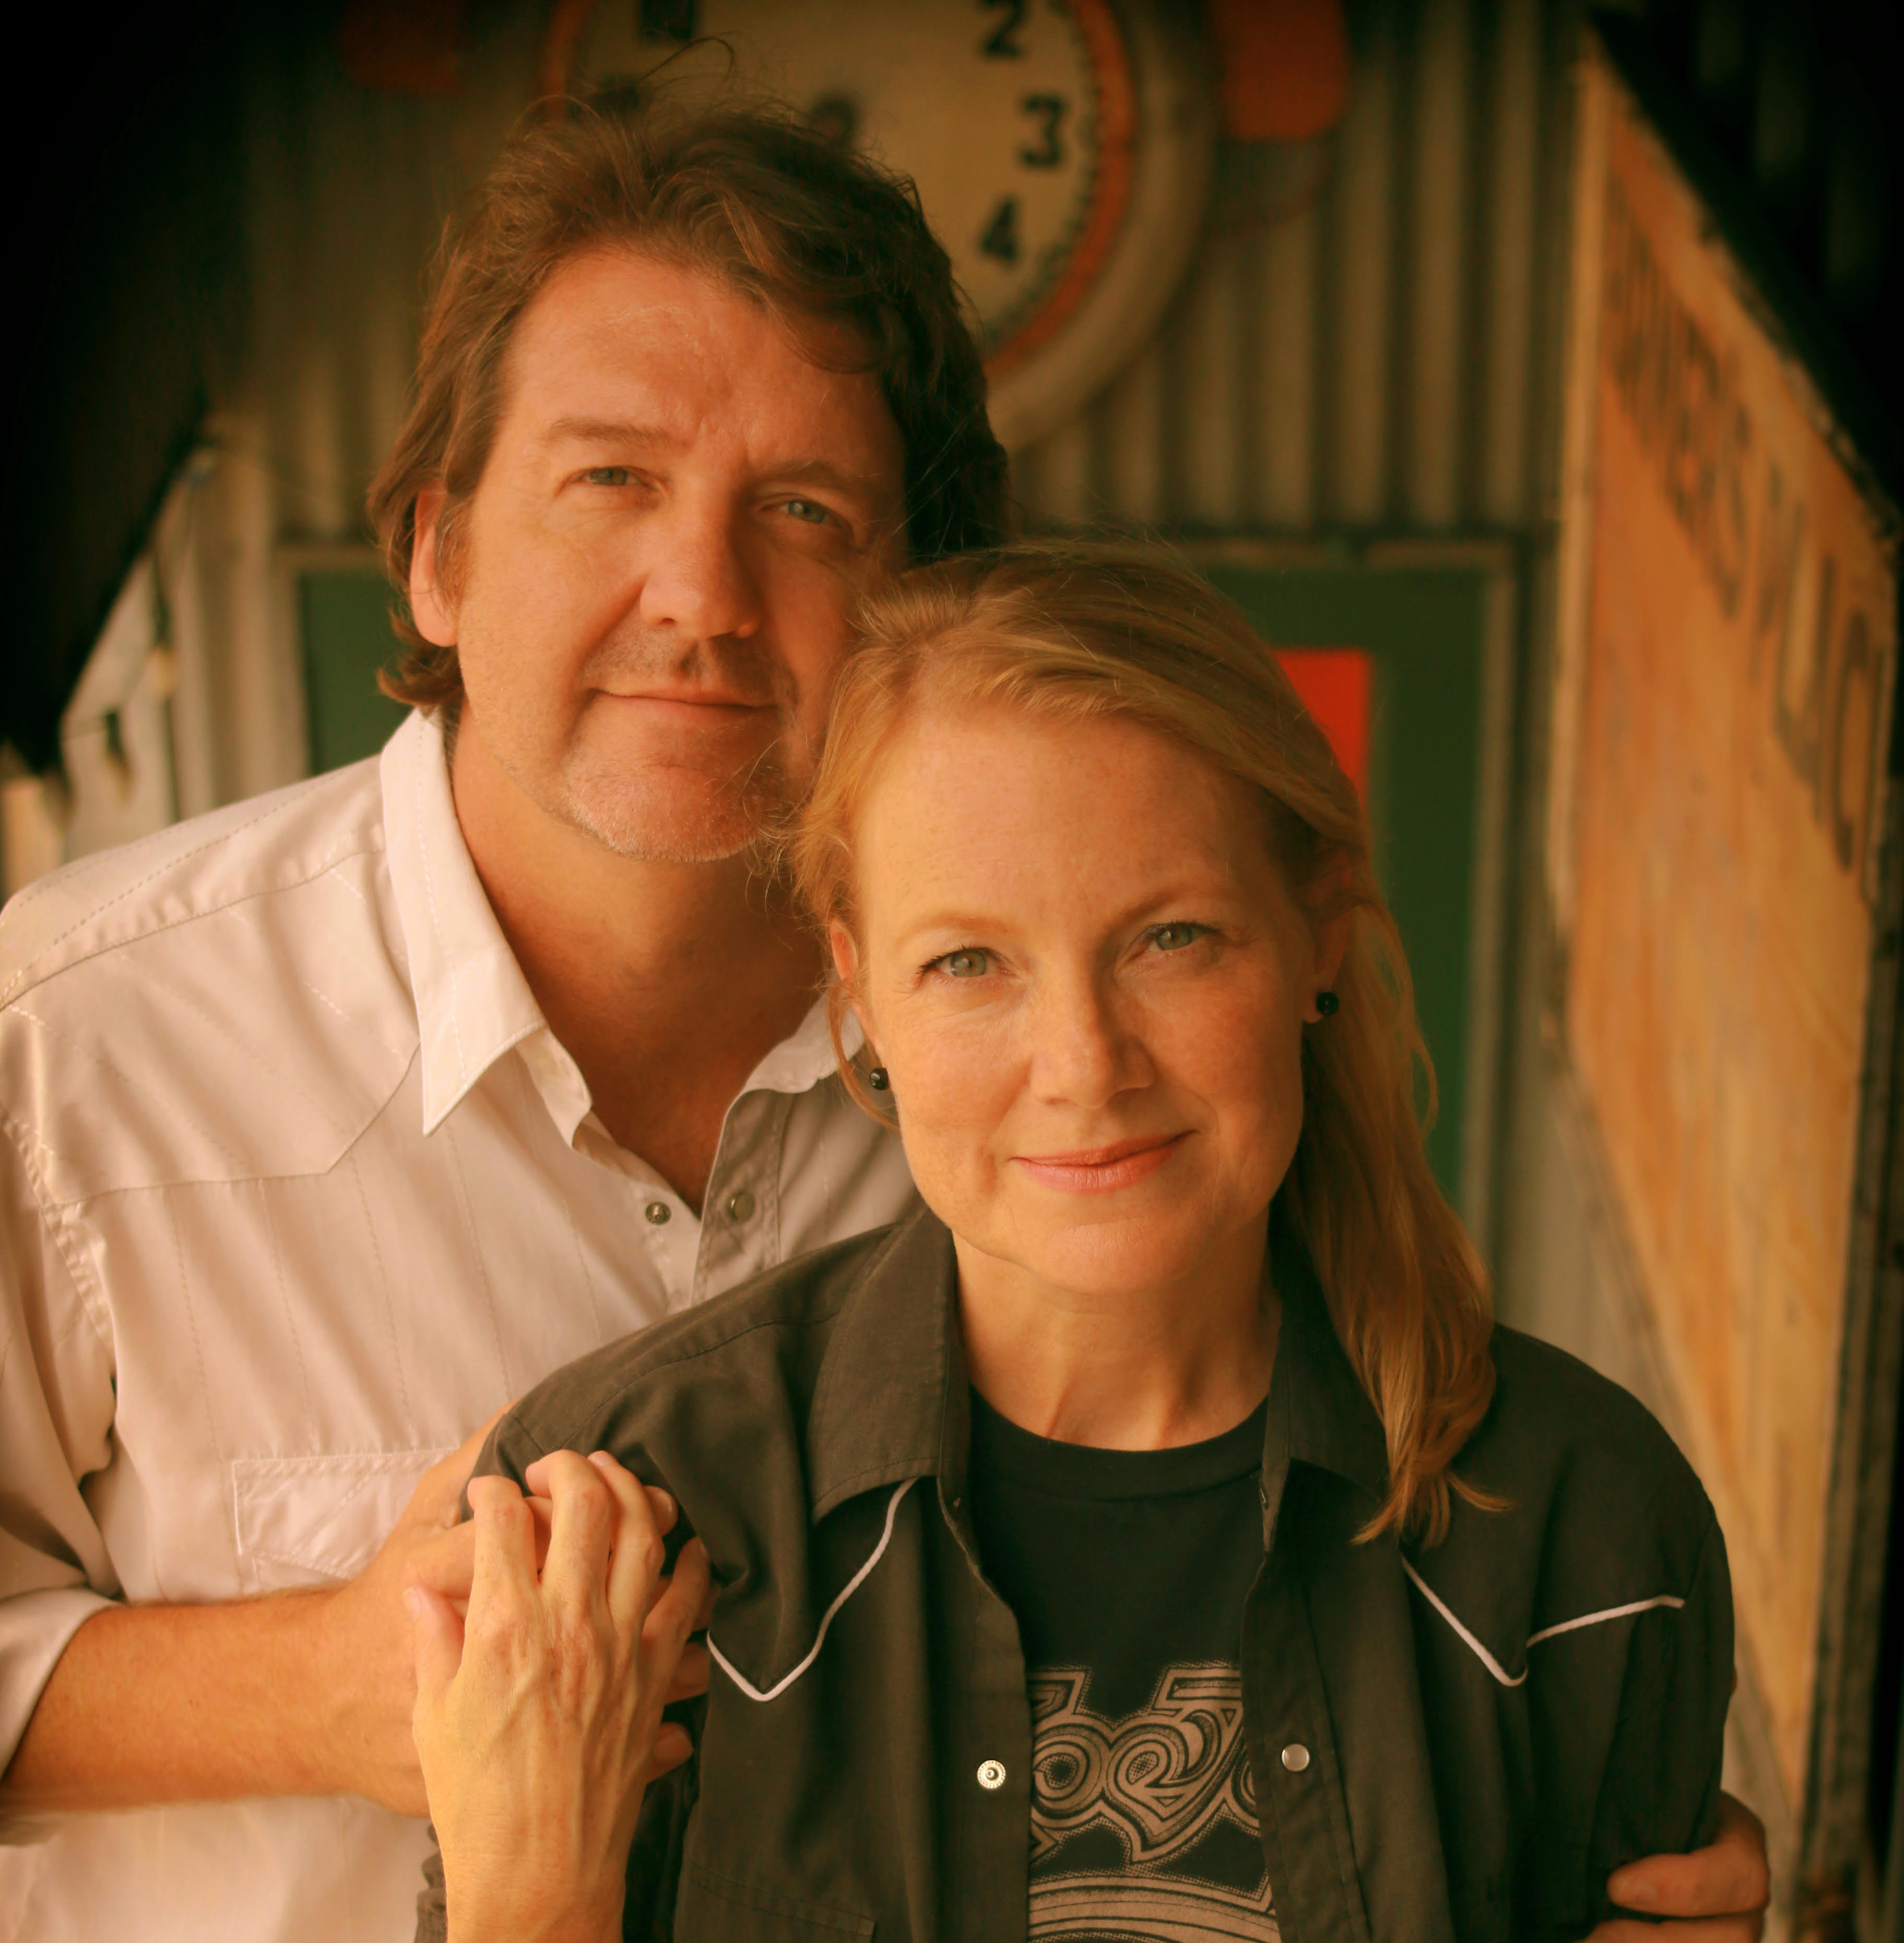 Married couple, Bruce Robison and Kelly Willis, bring their Honky Tonk Tour to Royal Theater